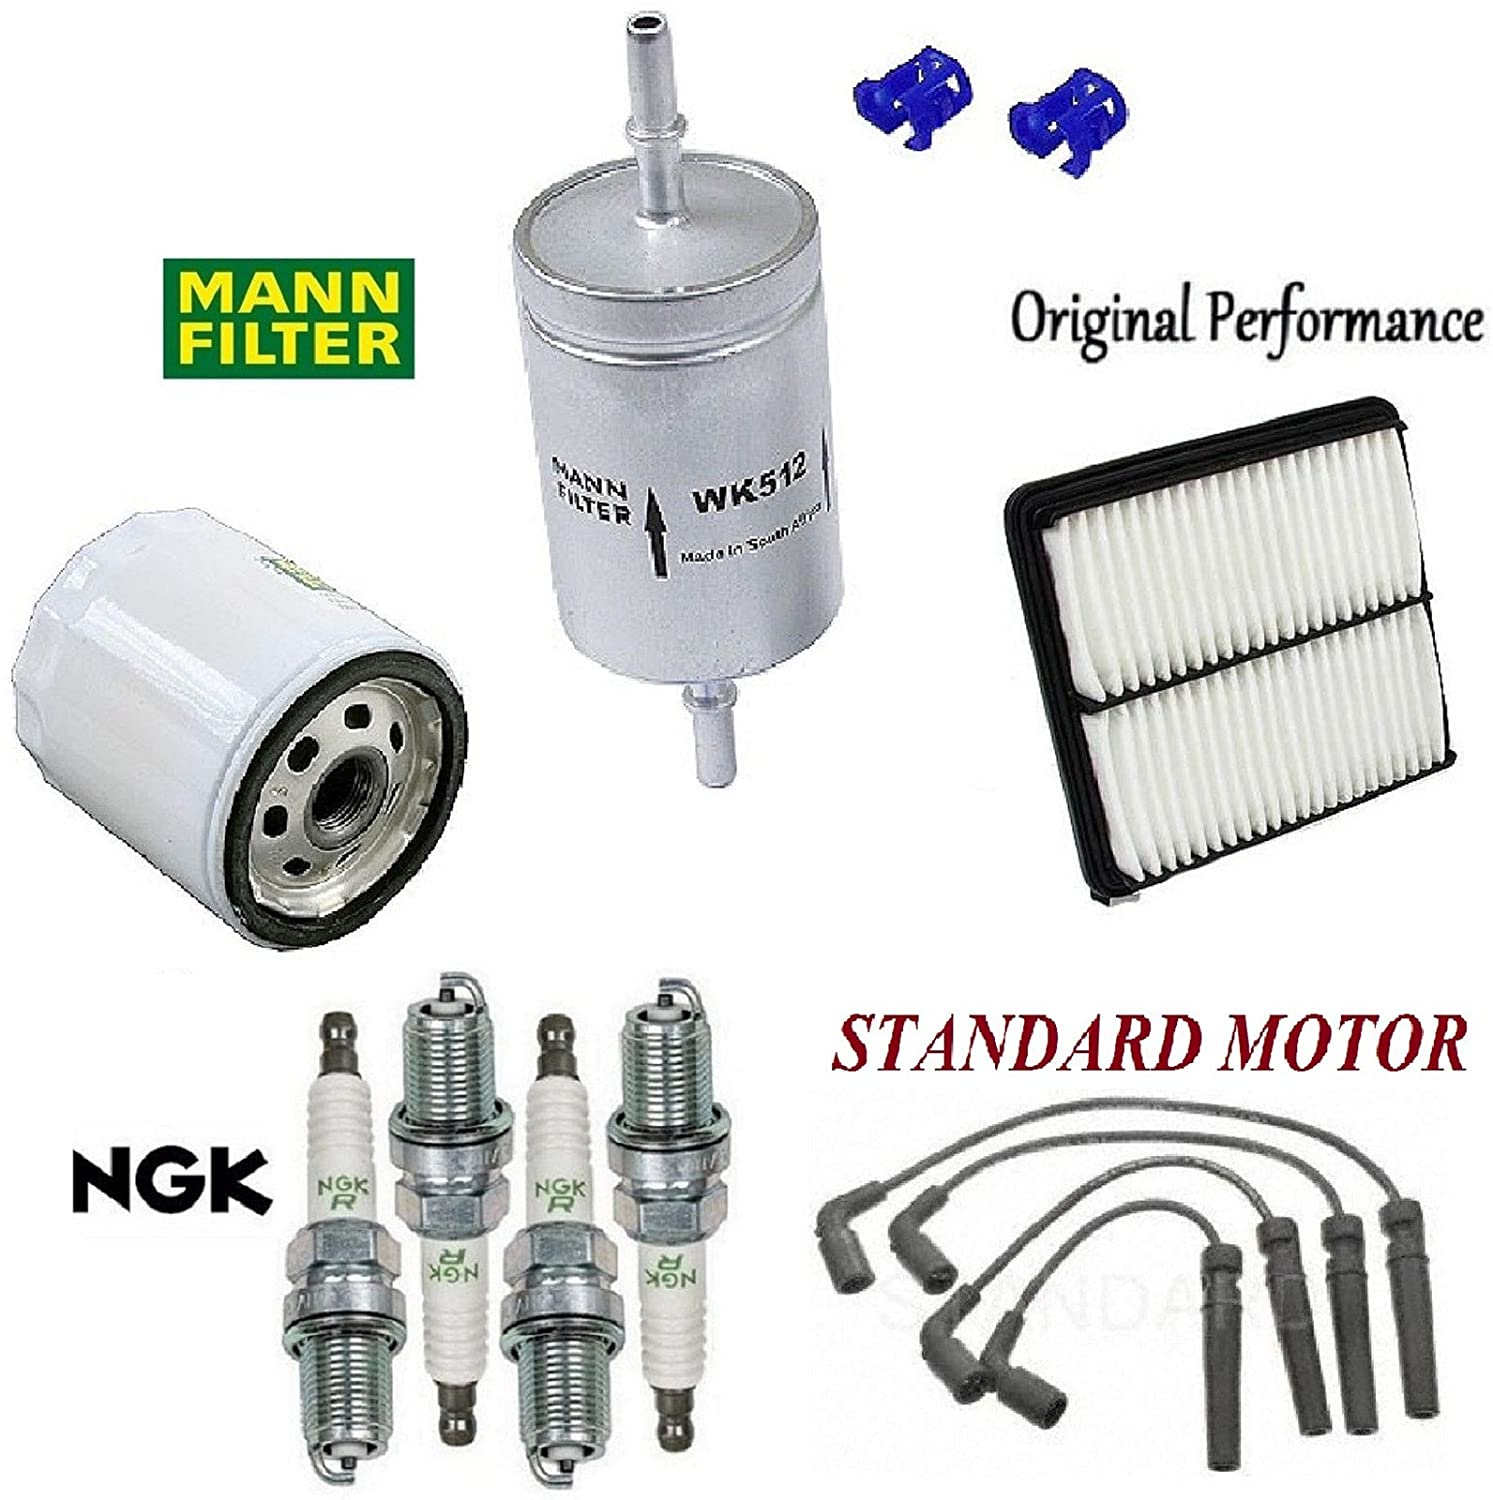 Tune Up Kit Air Oil Fuel Filters Plugs Wire For Daewoo Leganza Filter Location Lanos L4 16l 1999 2002 Automotive